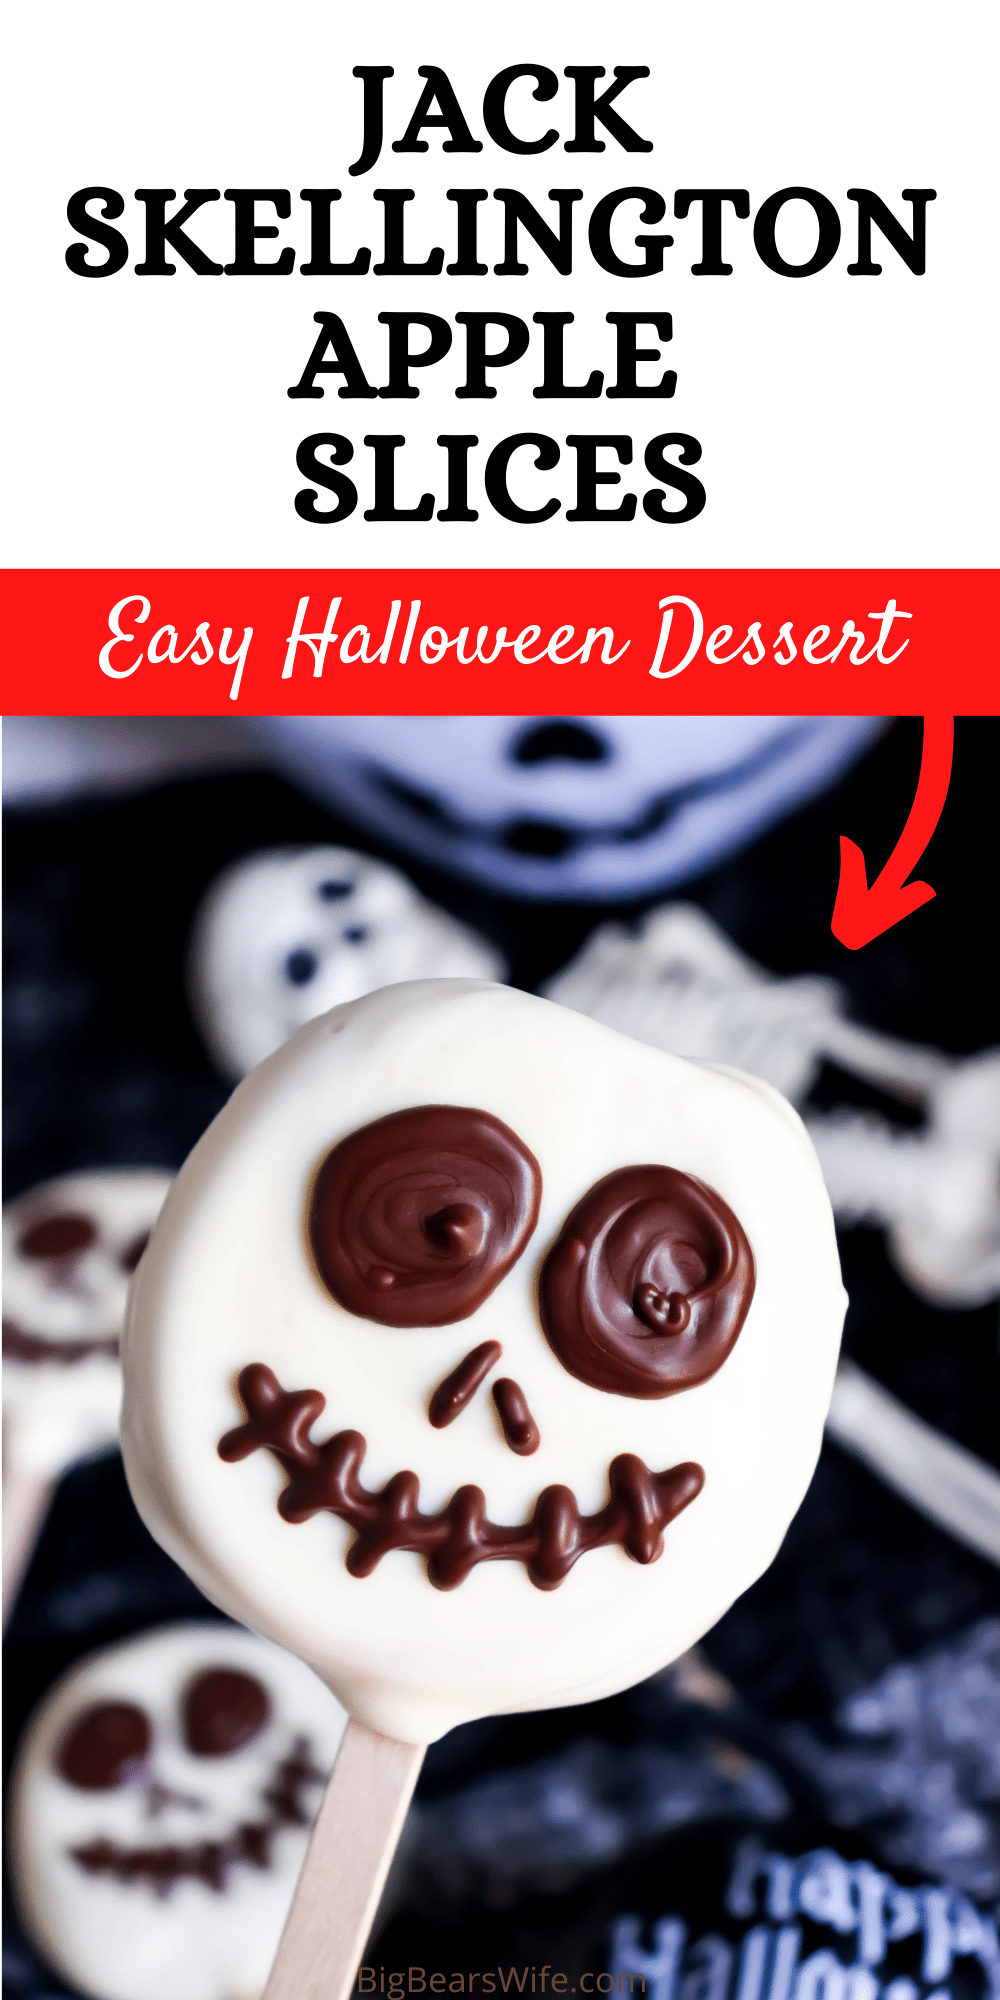 Jack Skellington Apple Slices - Apple slices stuck on a popsicle stick and then dipped in white chocolate candy coating before getting a fun chocolate Jack Skellington face pipped on!  via @bigbearswife